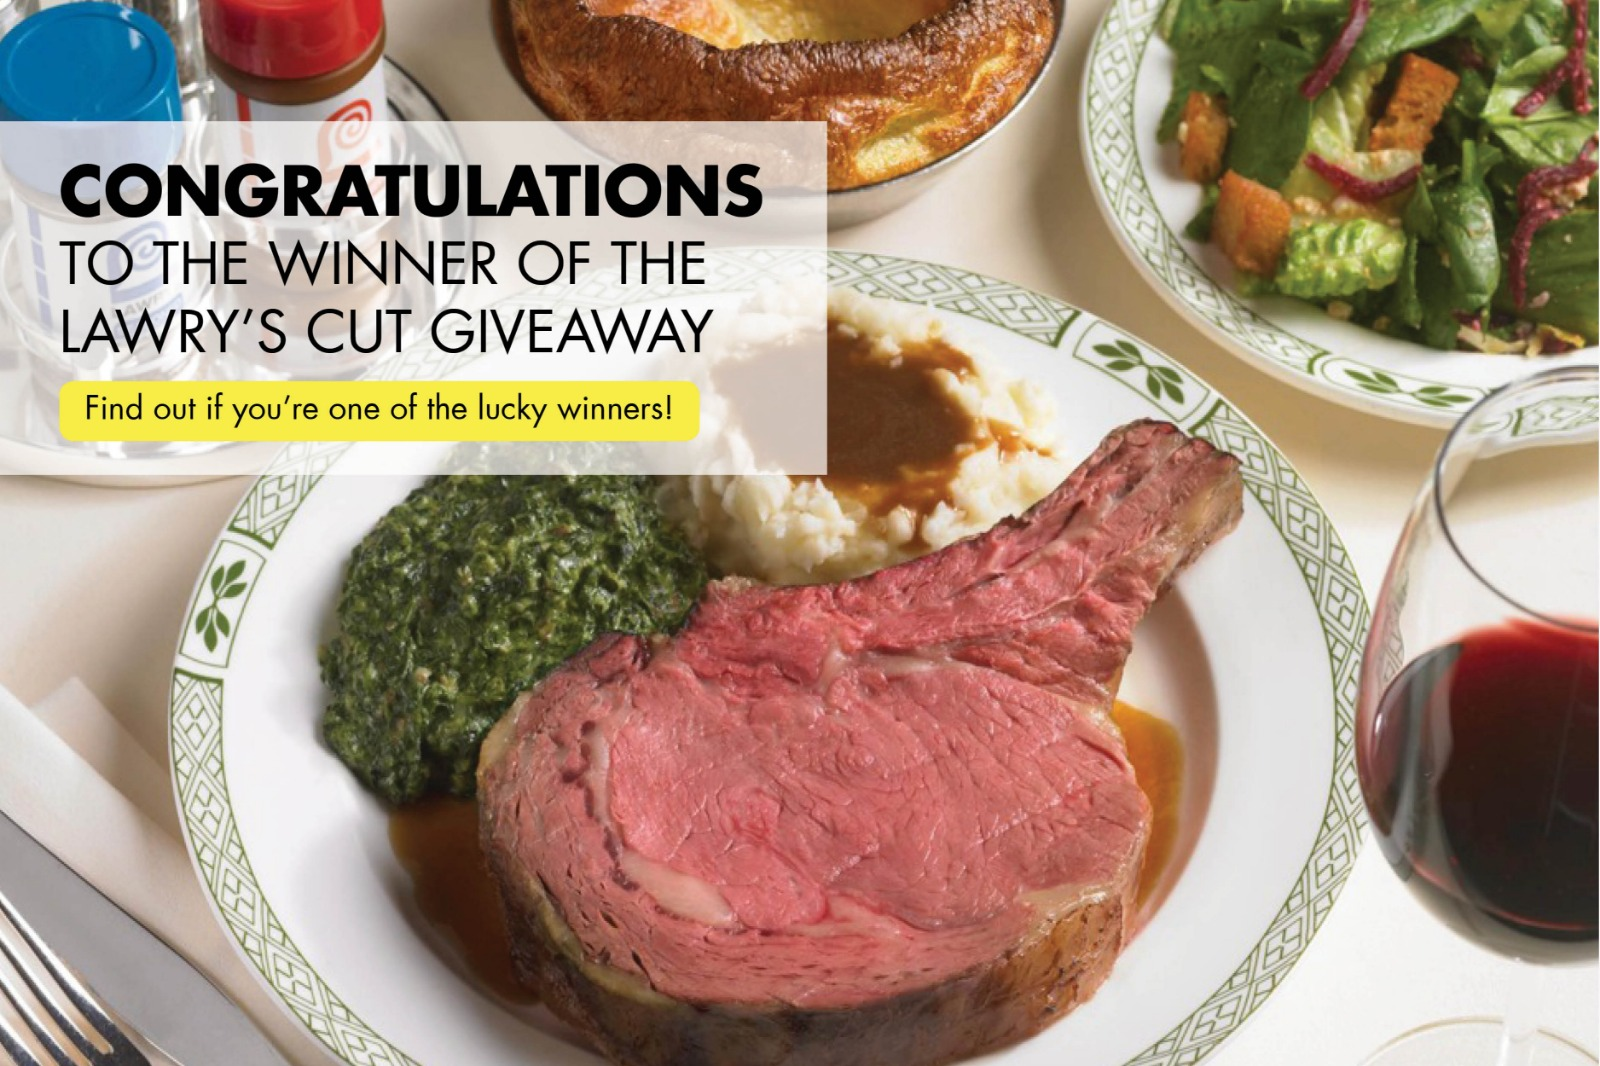 WEEKENDER The Lawry's Cut Giveaway